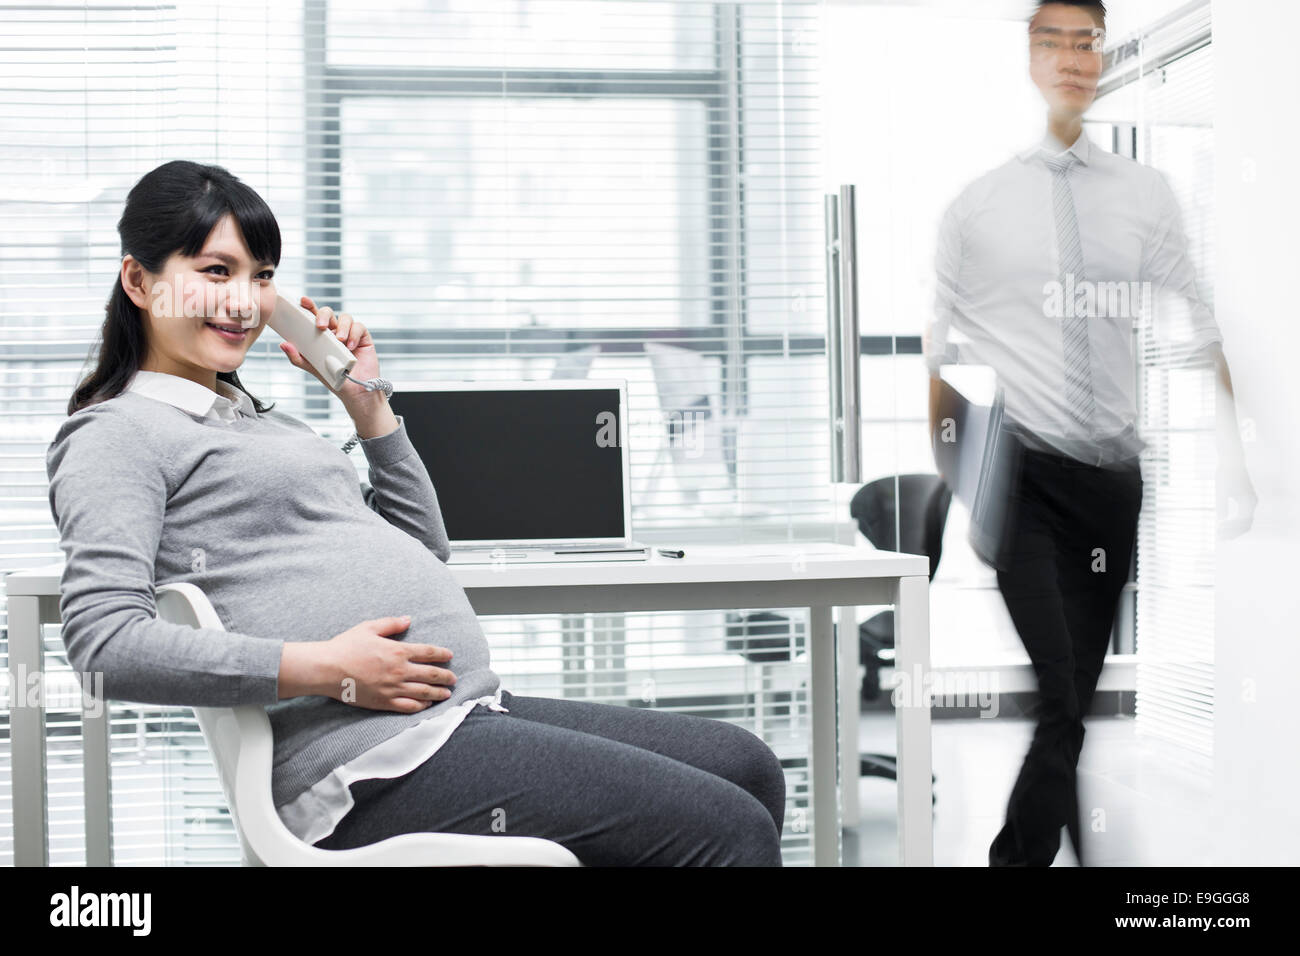 Pregnant businesswoman on the phone and businessman walking out - Stock Image